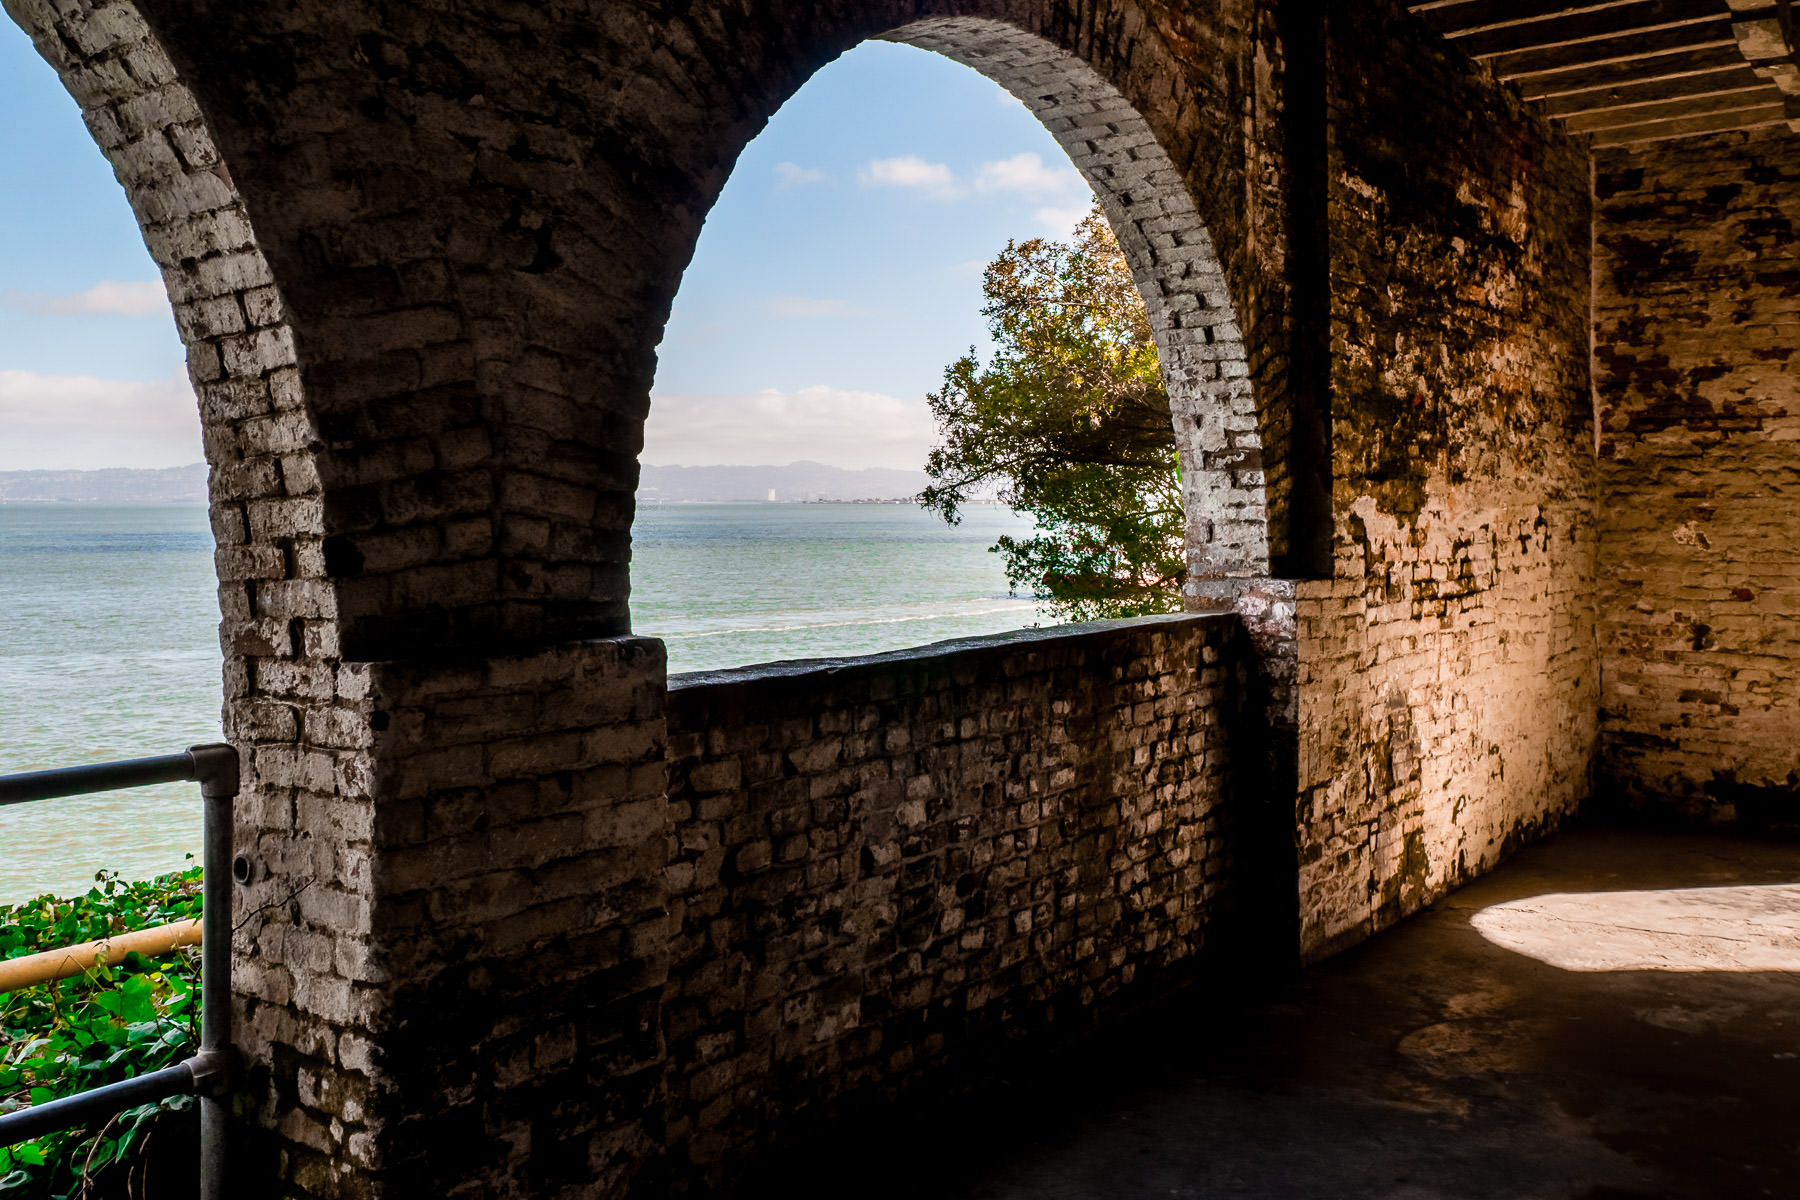 A brick archway offers a view of San Francisco Bay at the historic Alcatraz Federal Penitentiary.